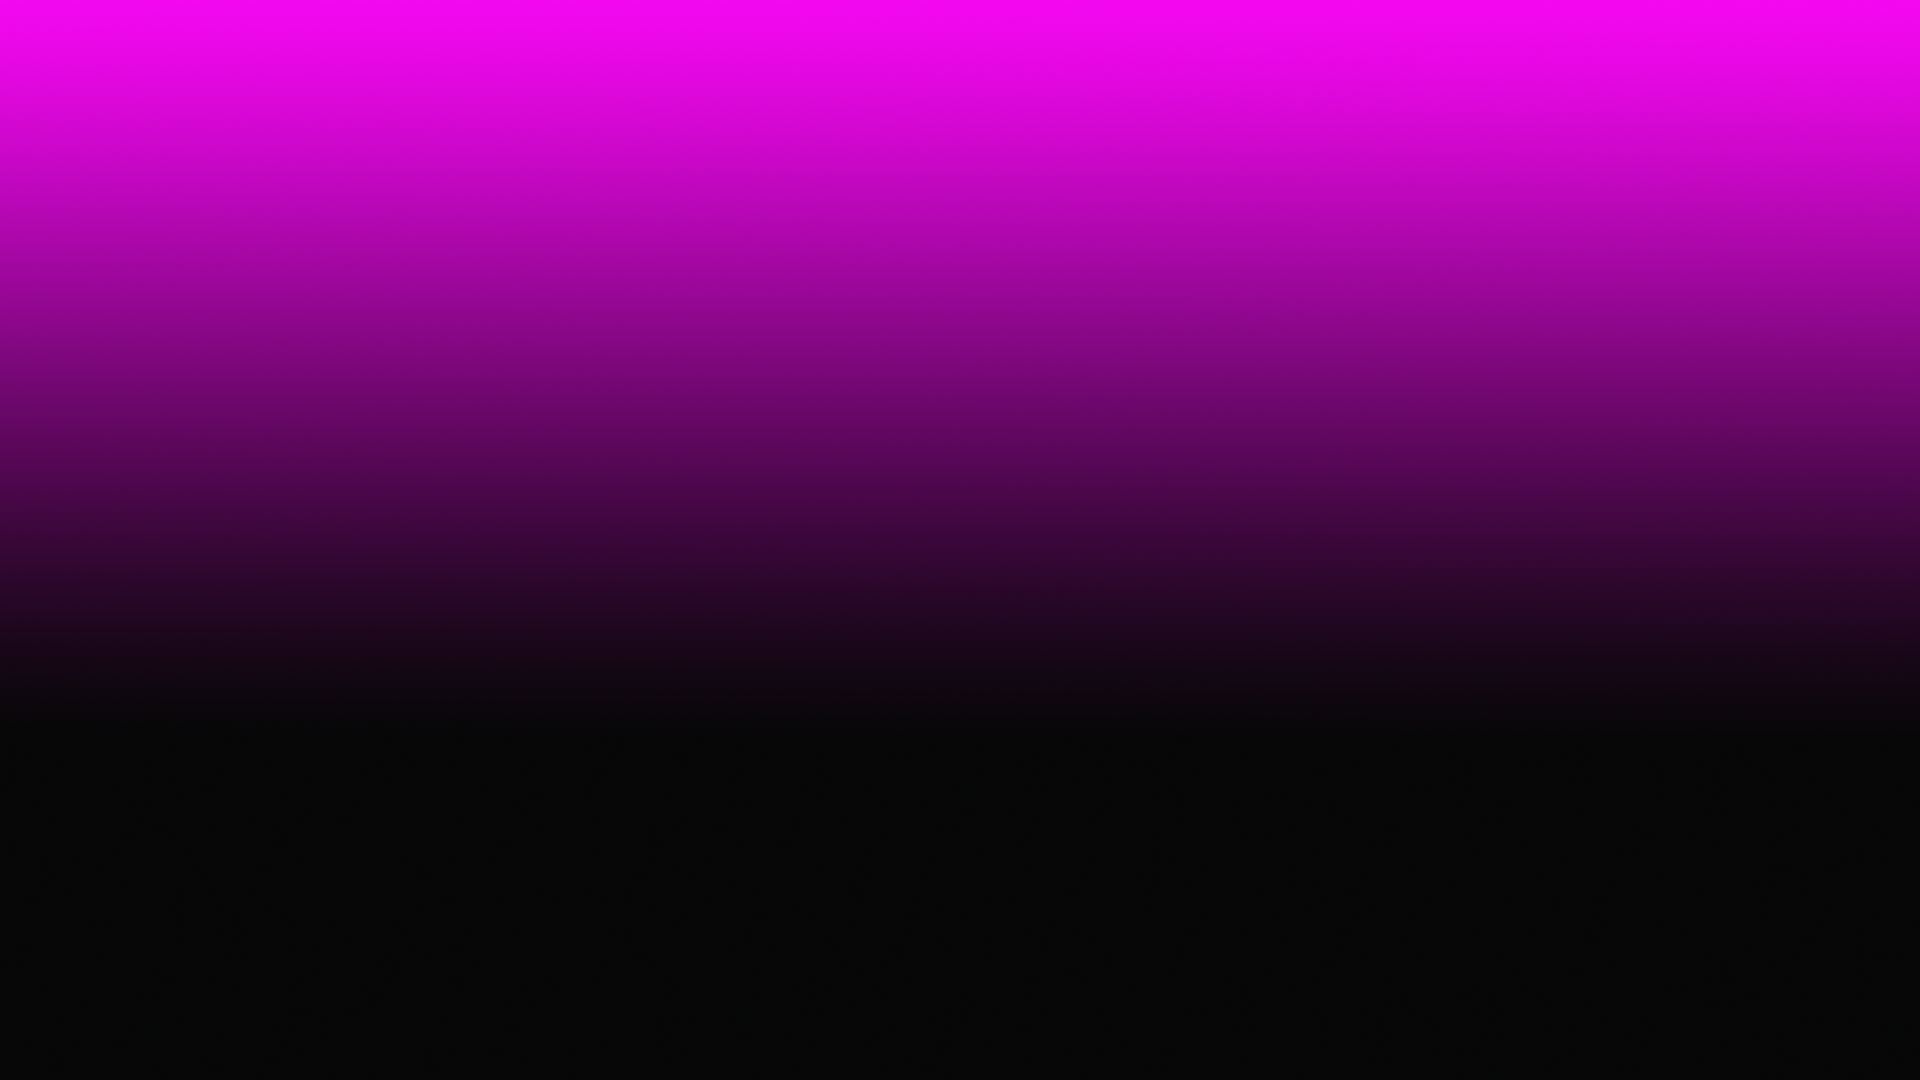 pink and black gradient wallpaper 58836